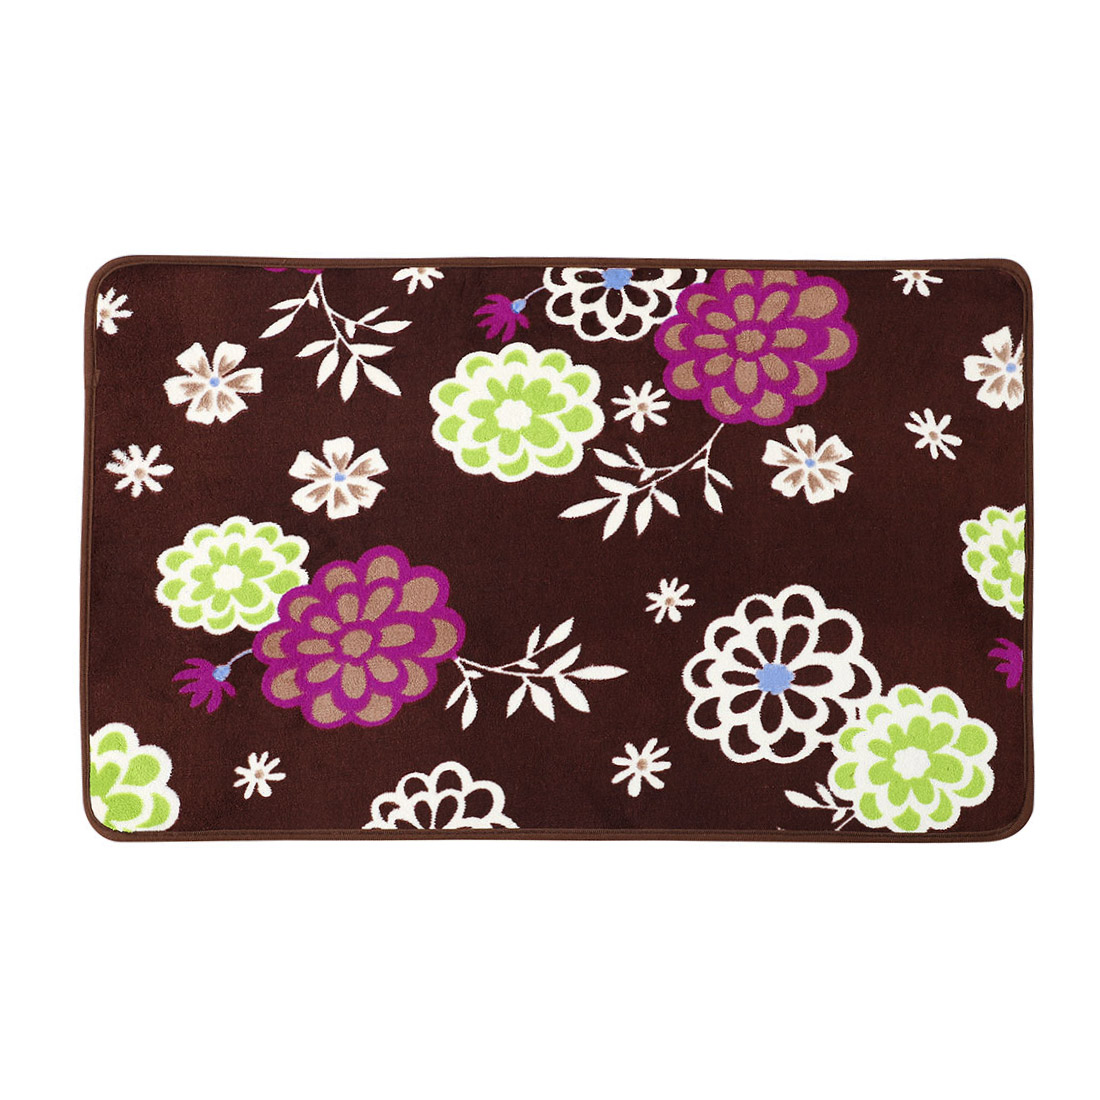 Dark Brown Flowers Pattern Nonslip Floor Mat Area Rug Carpet 80cm x 50cm